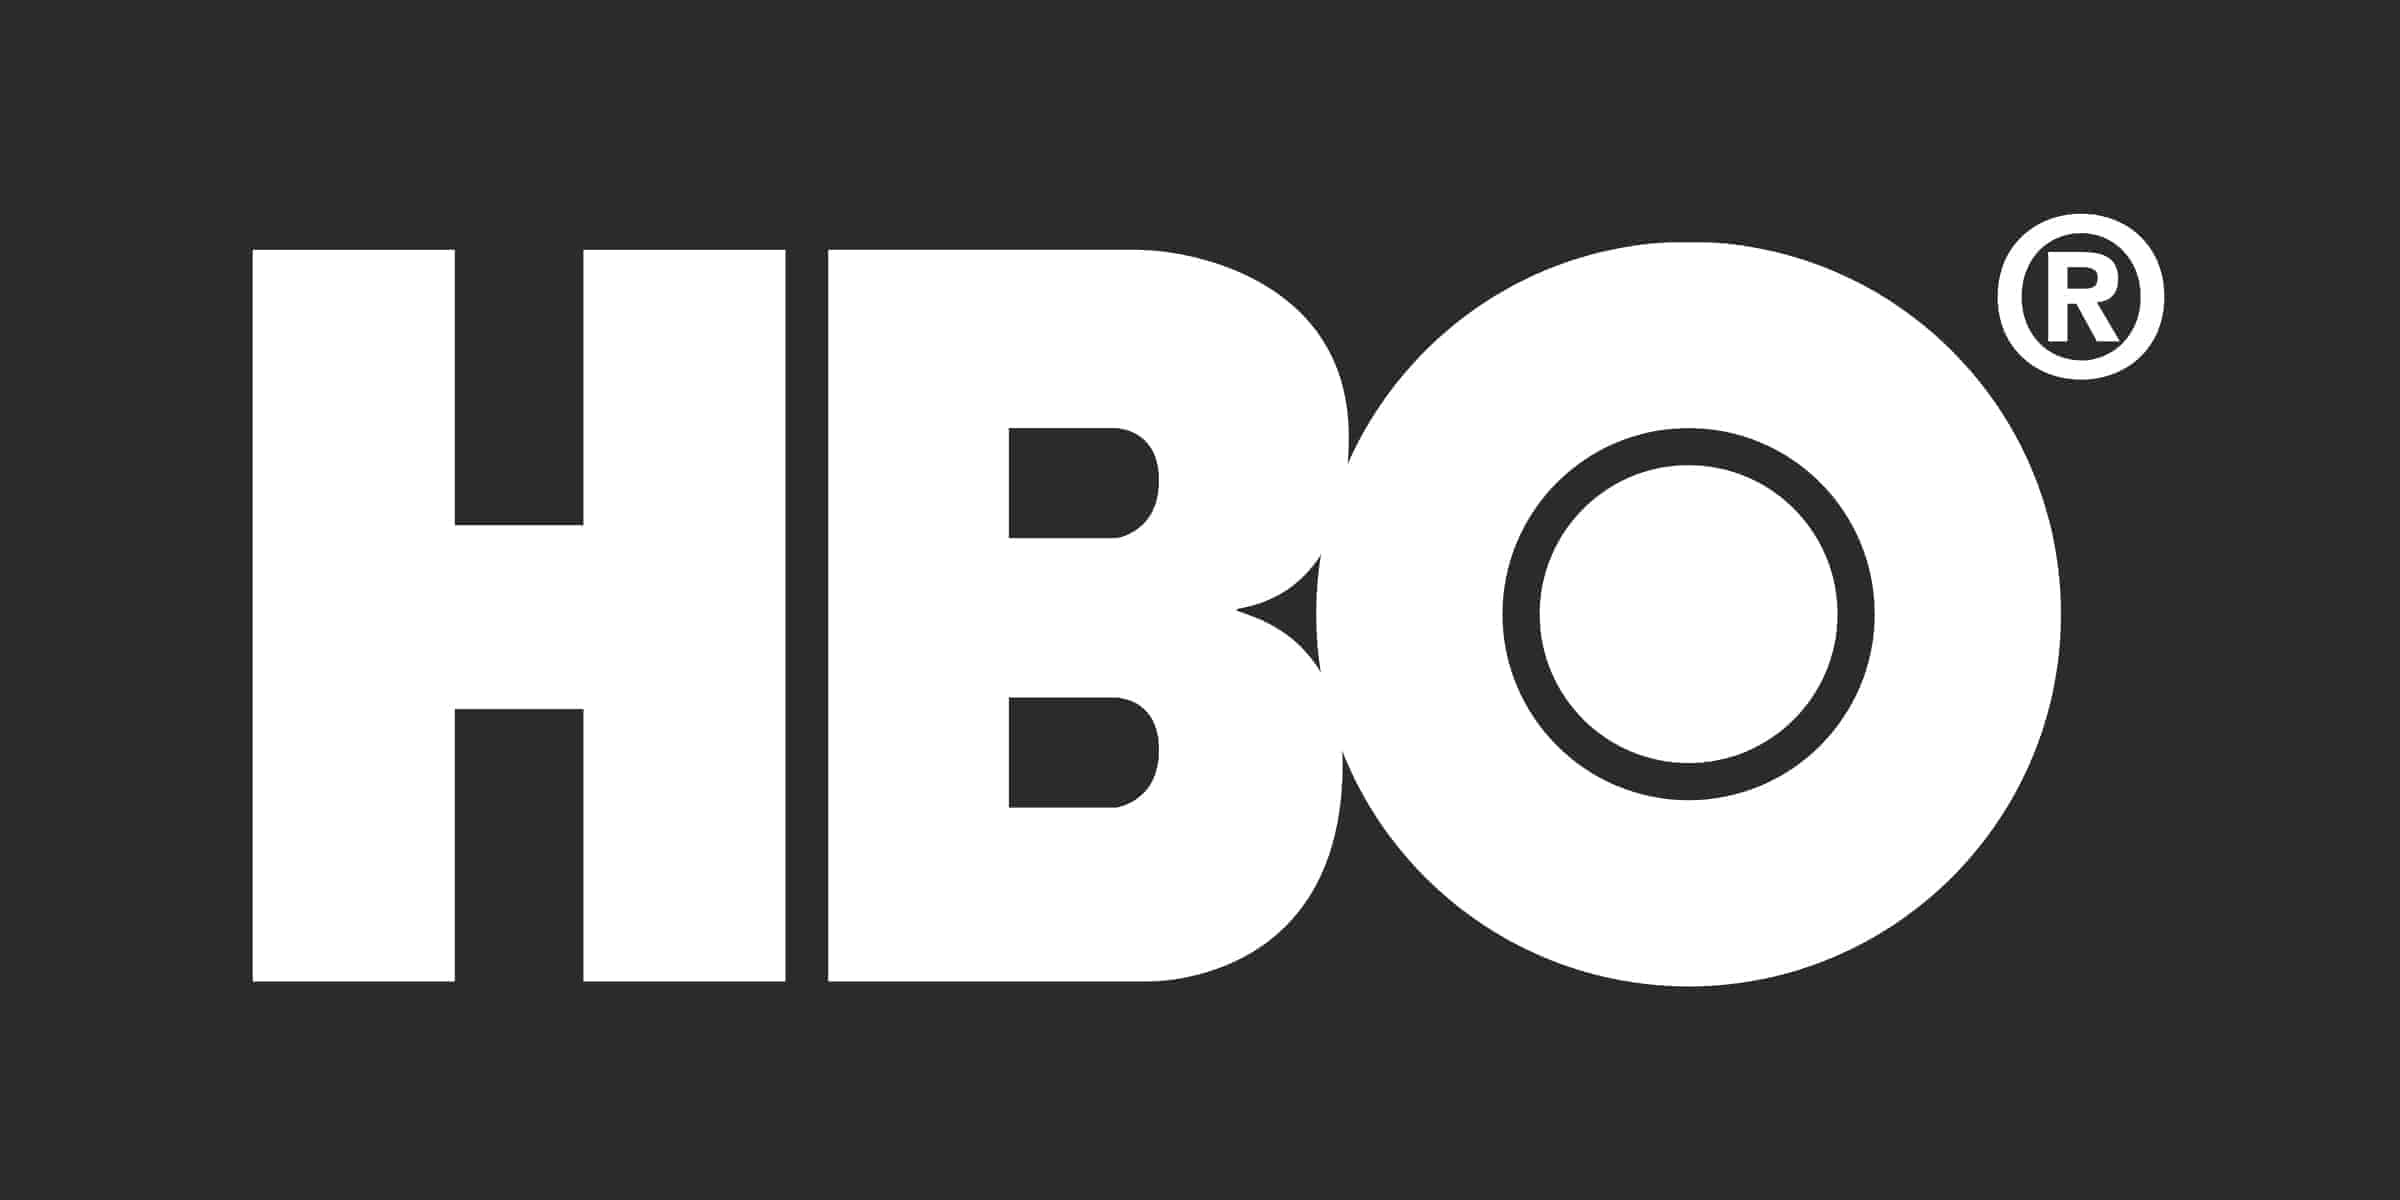 hbo topics The westworld season 2 trailer that dropped during super bowl lii gave us the answer we wanted more than any other: when season 2 will premiere on hbo topics.